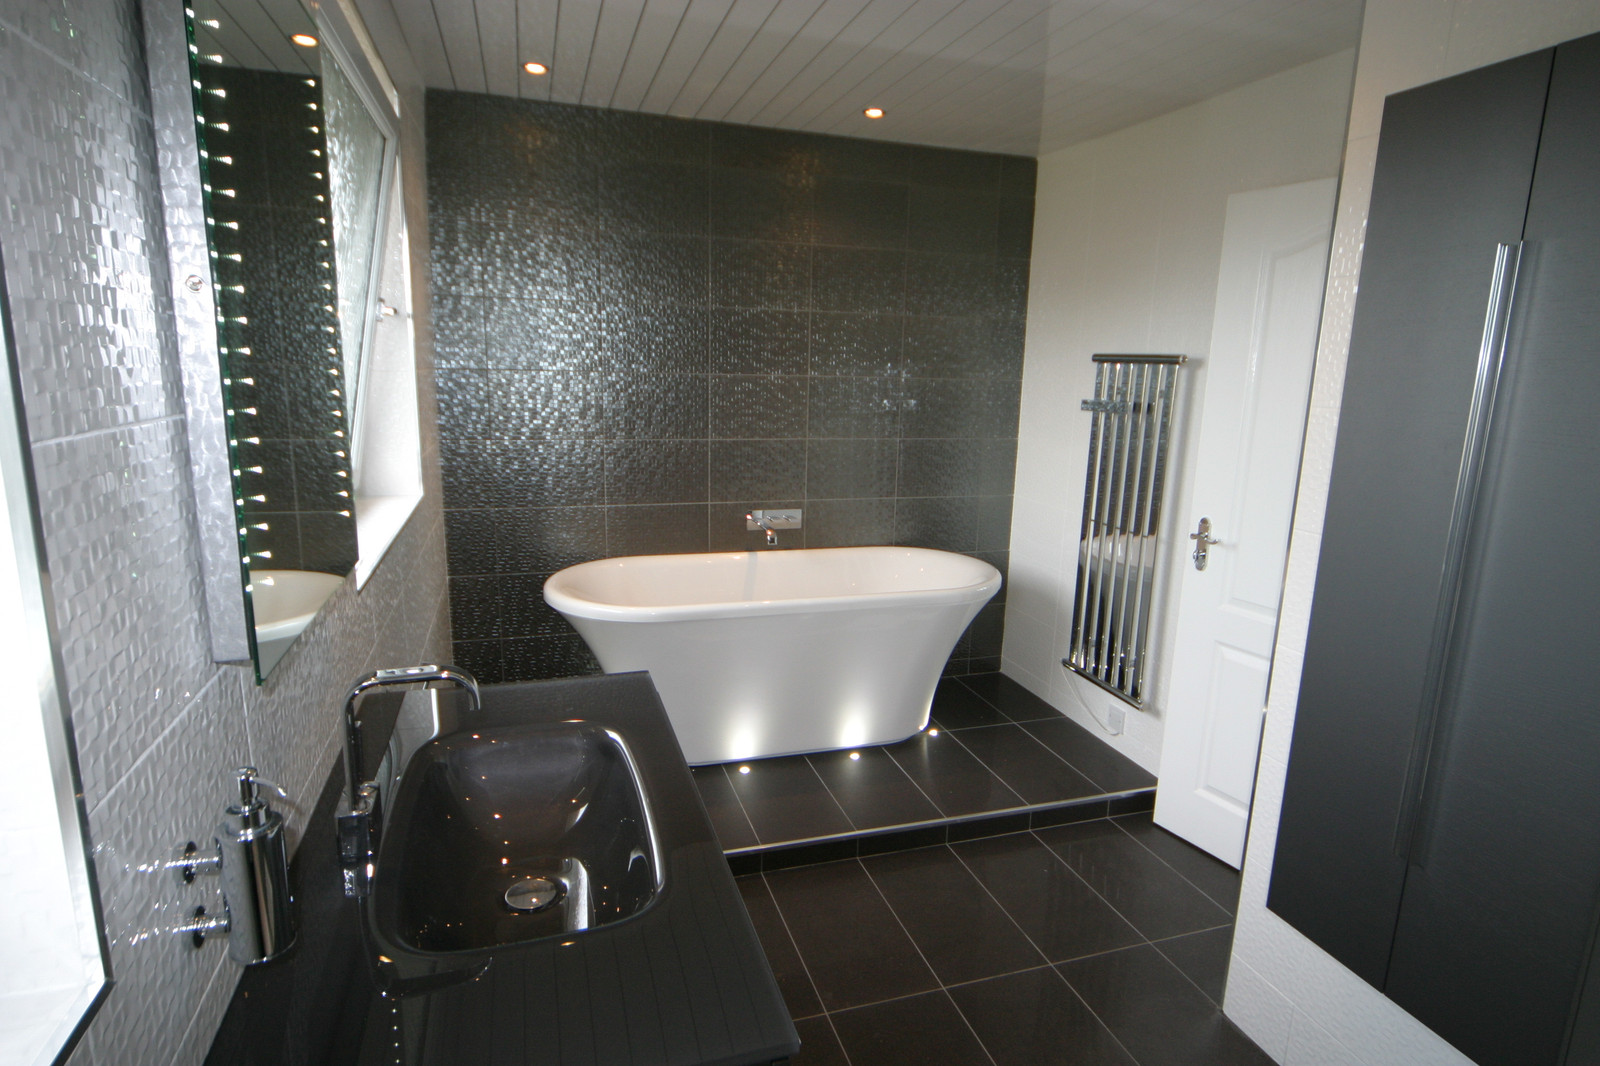 Black Tiled Bathroom Bathroom And Kitchen Design Glasgow Scotland Lifestyle